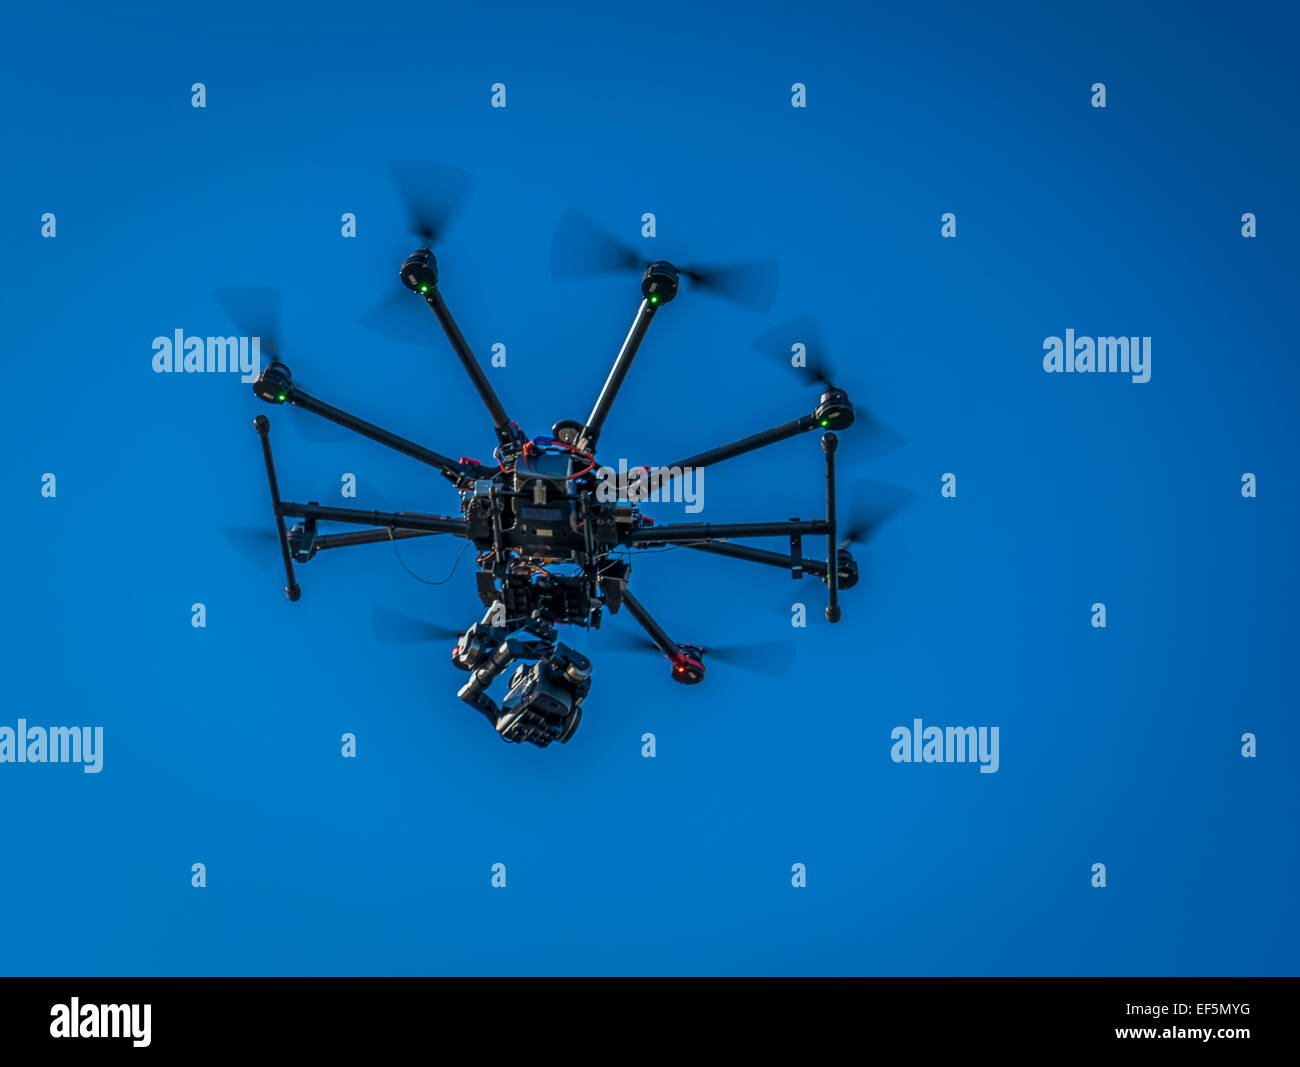 DJI S1000, Radio Controlled Drone flying with a camera, Iceland. - Stock Image